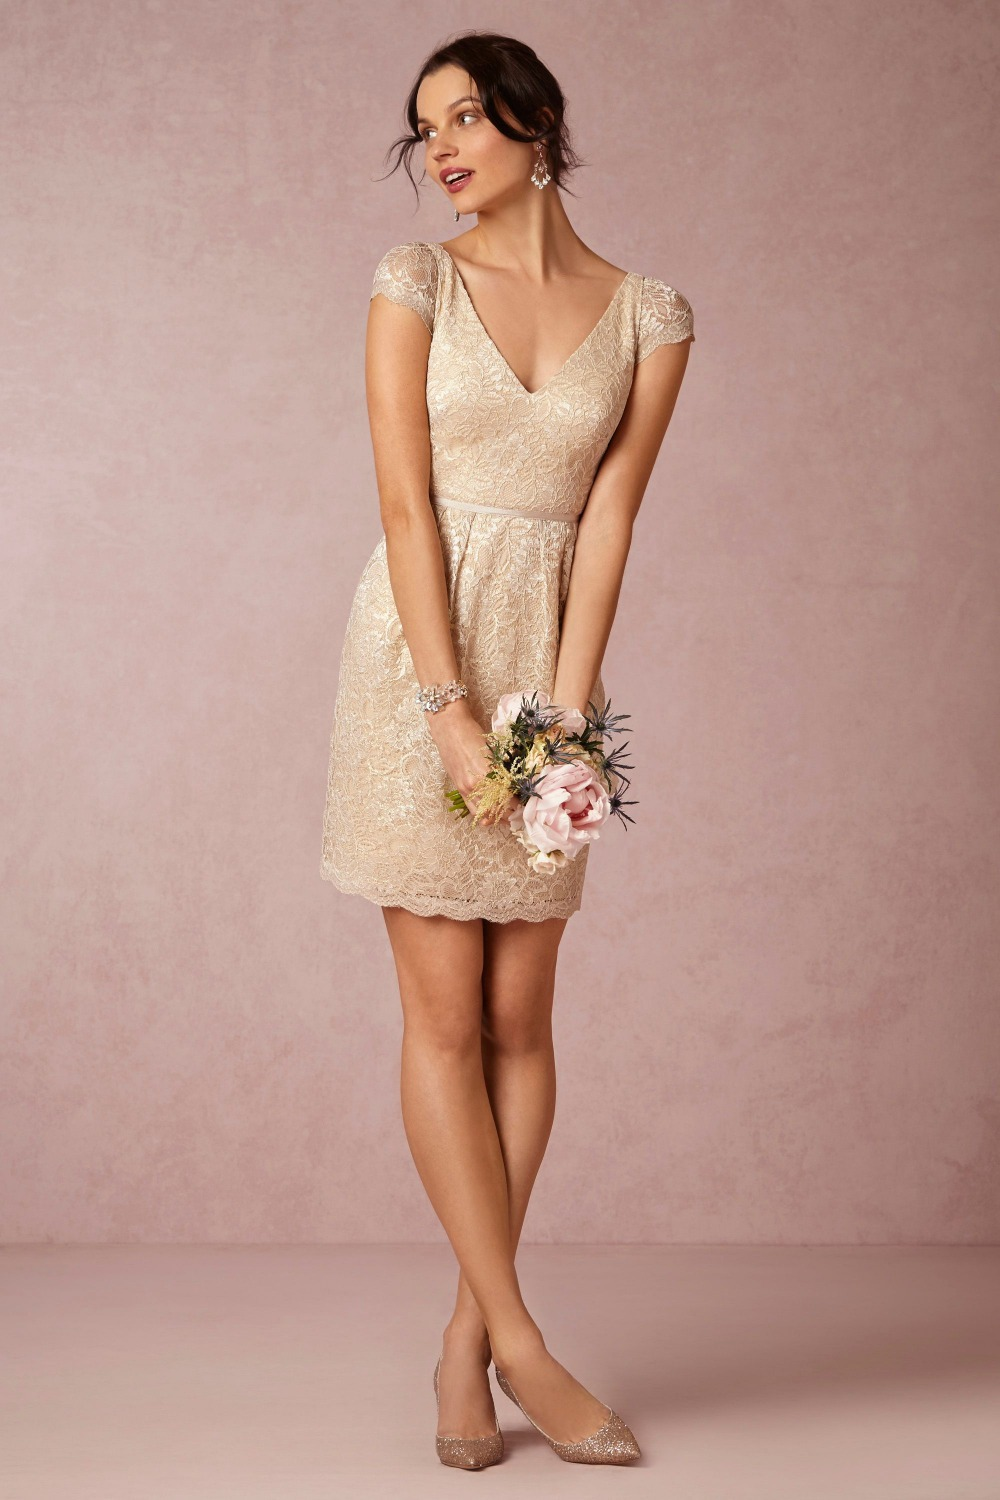 ff7691ce532 Fashion Knee Length V Back champagne sequined Lace Bridesmaid Dresses sexy wedding  guest dresses vestido de festa curto BMD05-in Bridesmaid Dresses from ...